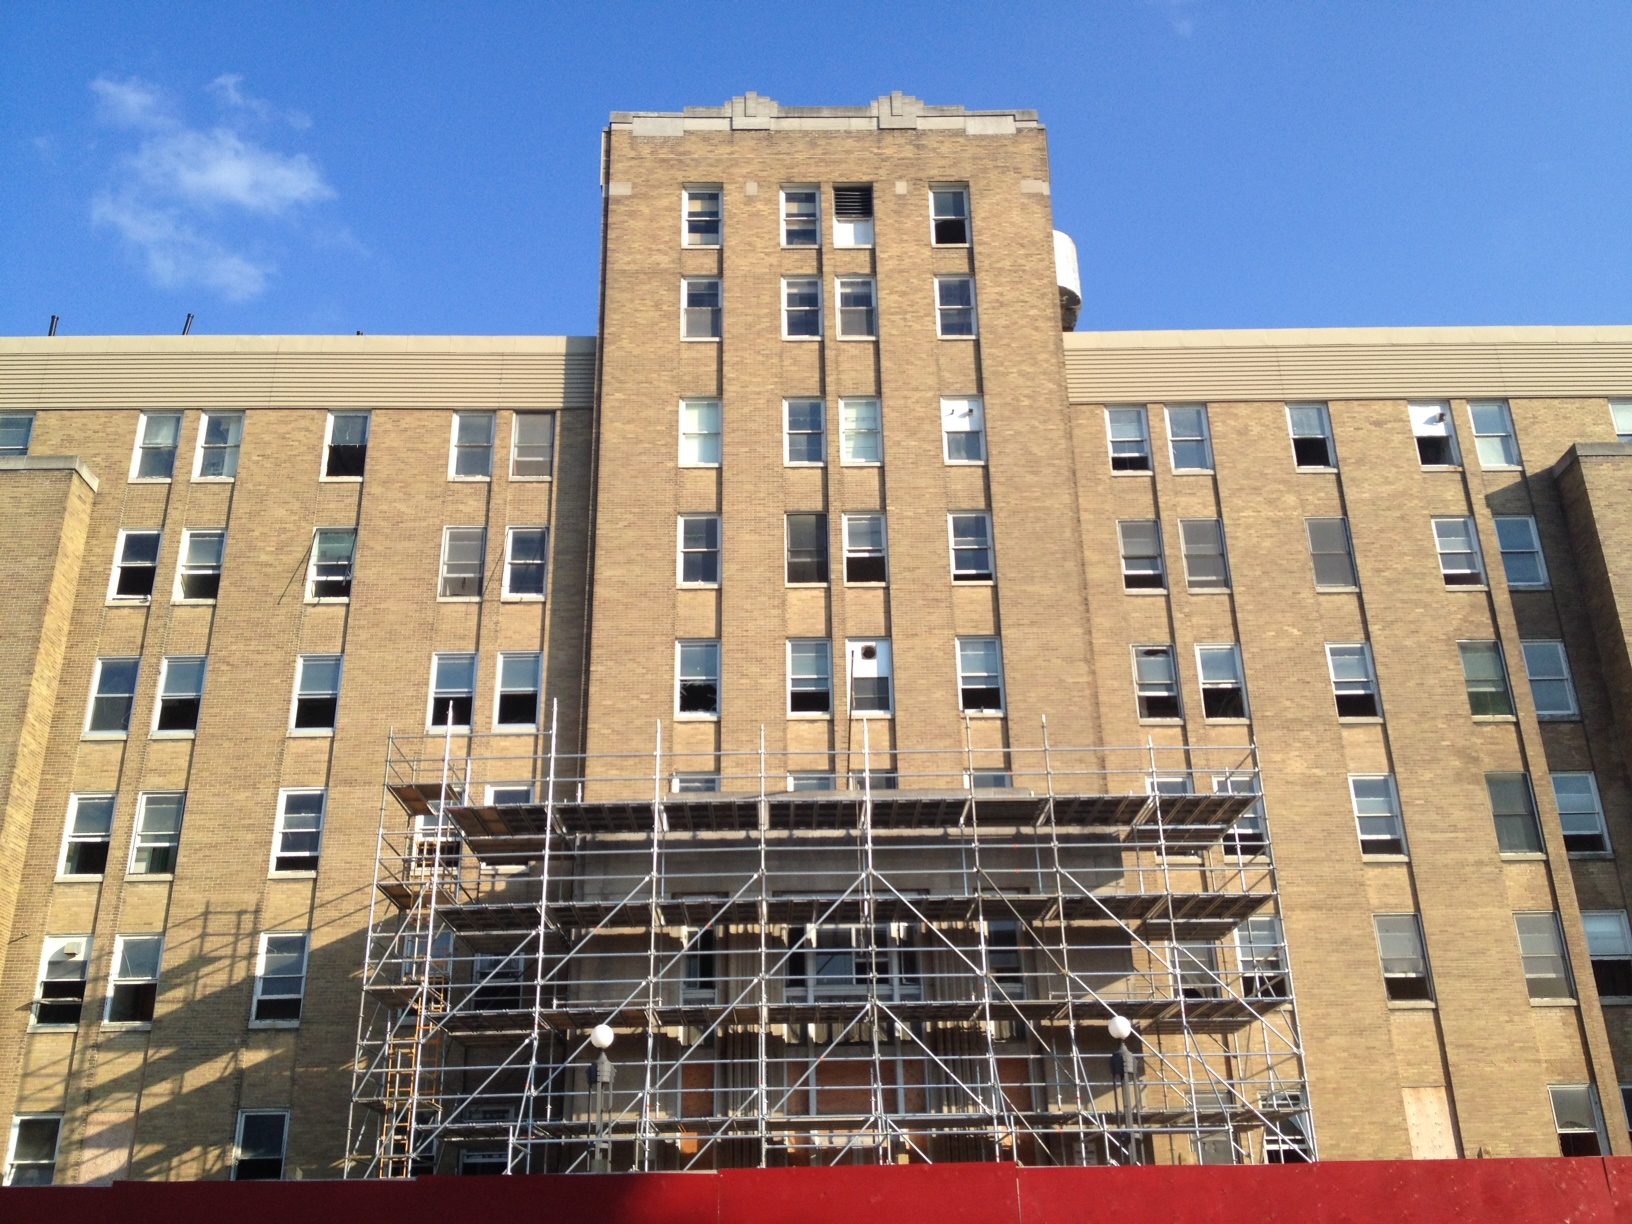 South Street Hospital with scaffolding out front, taken July 10, 2014